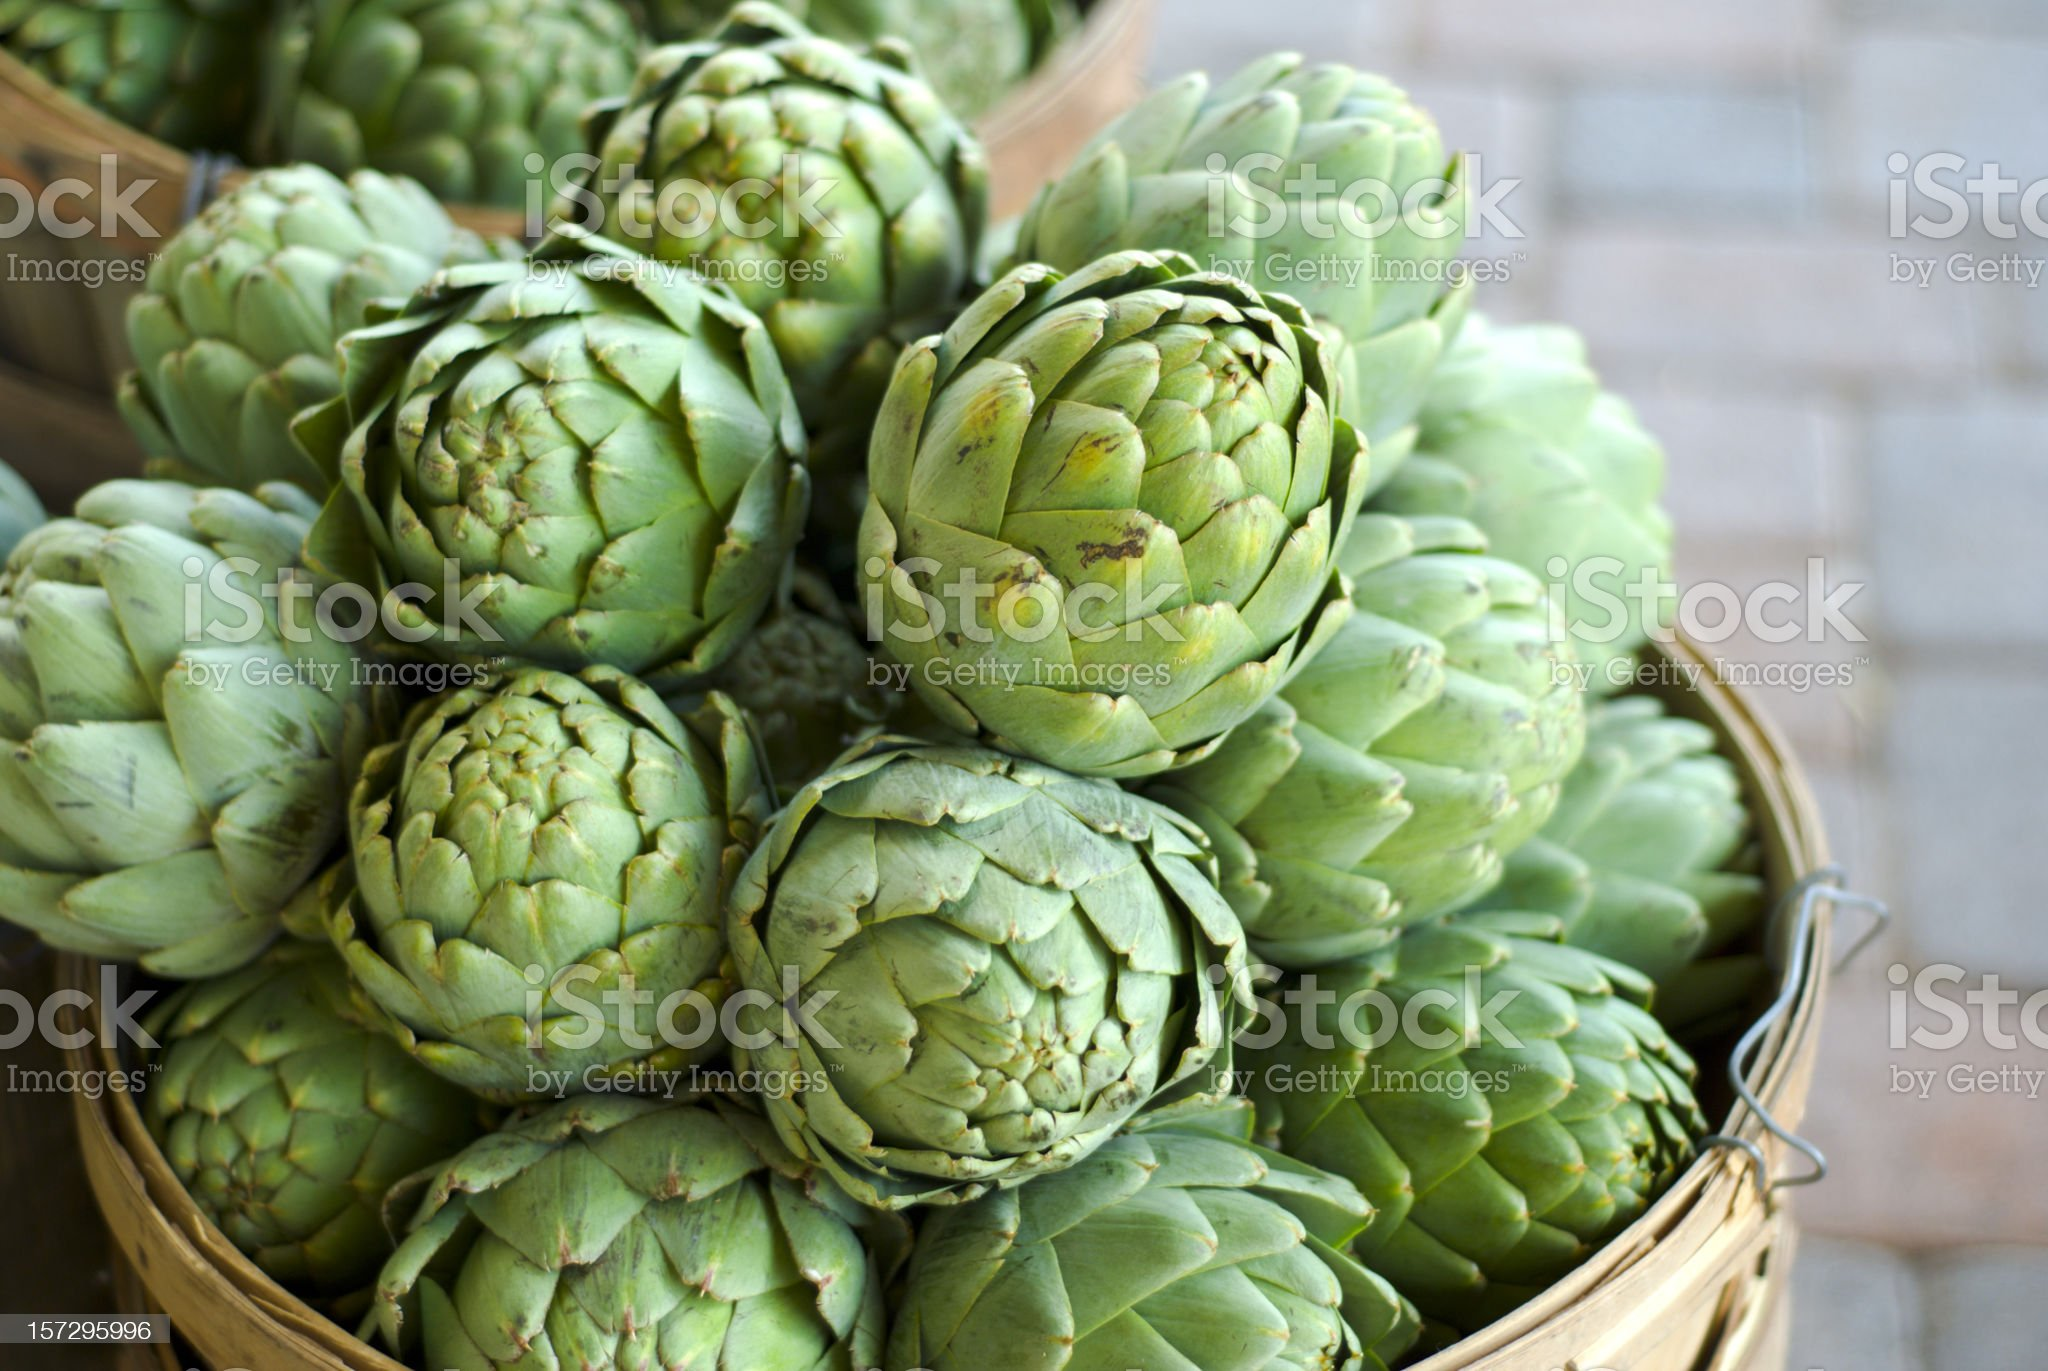 Artichokes Baskets, Fresh Spring Vegetables Food at Farmer's Market royalty-free stock photo